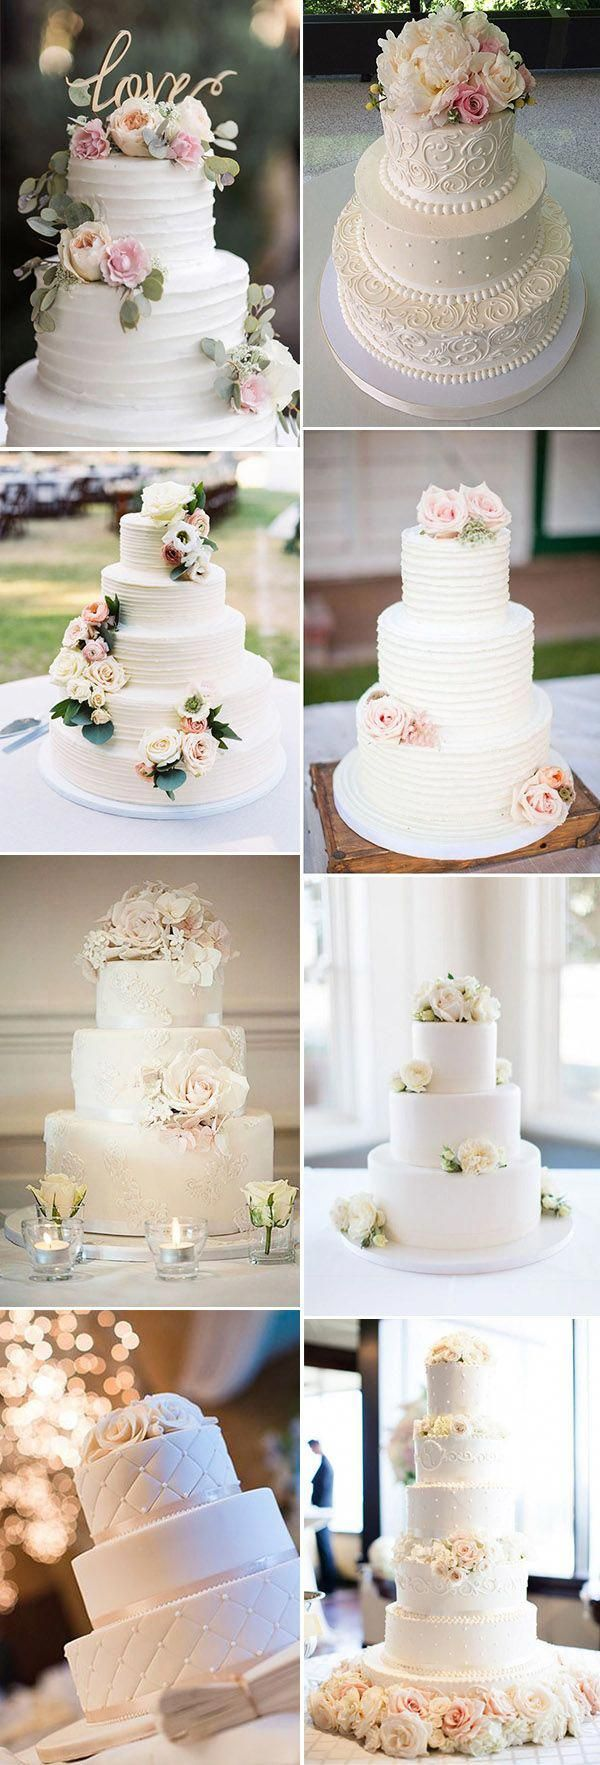 Elegant and romantic wedding cake ideas romanticweddings weddings